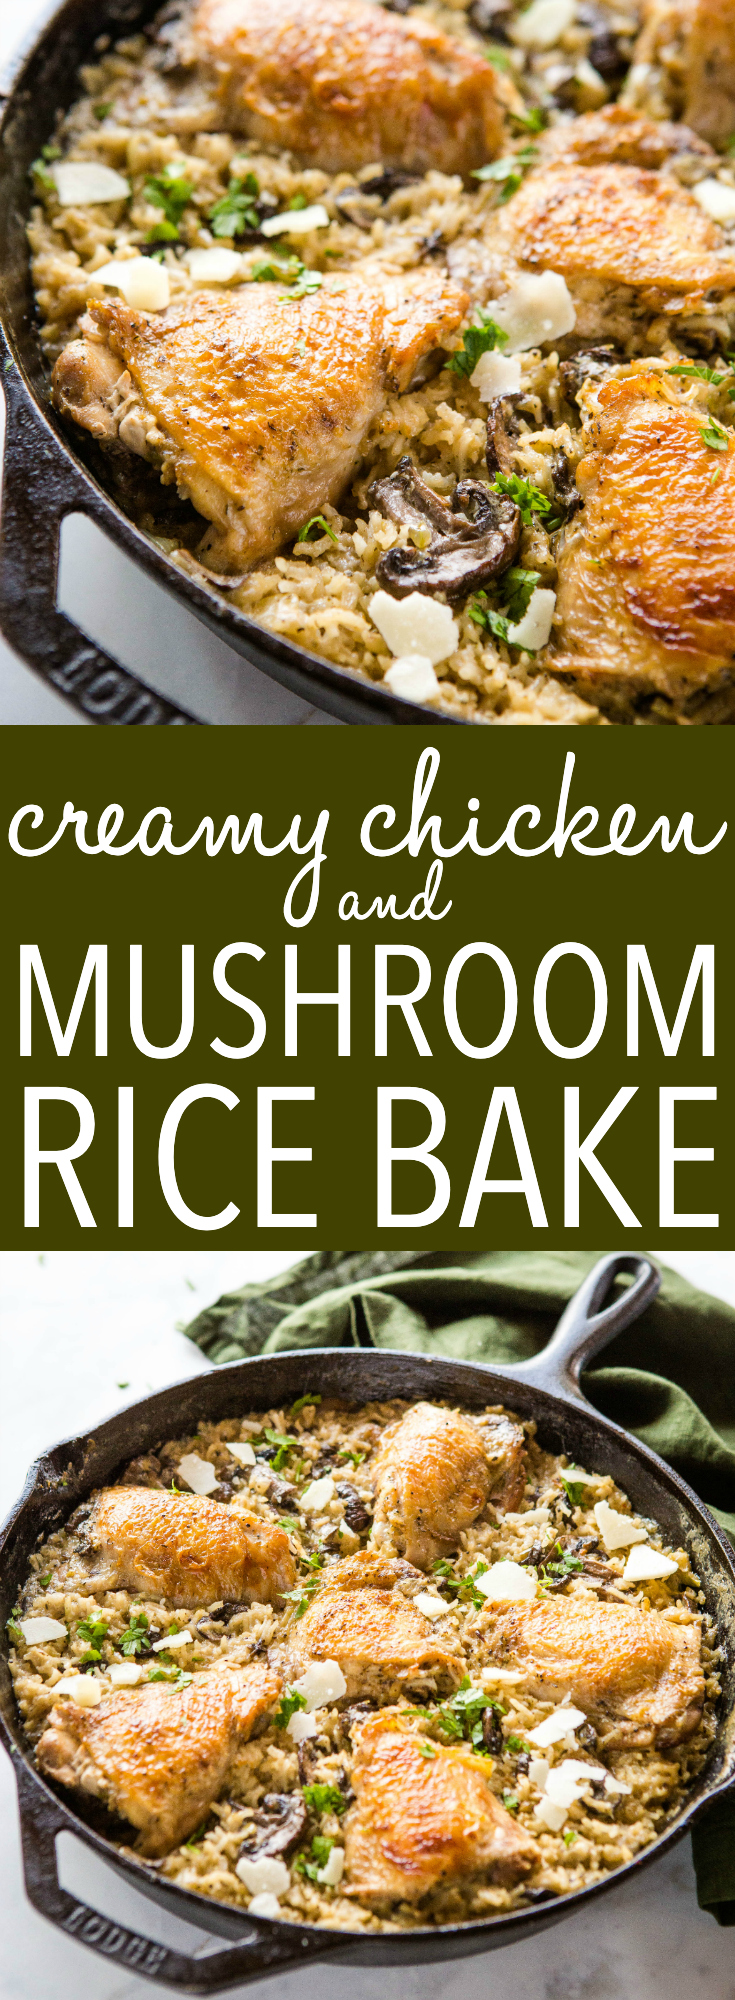 This Easy One Pan Creamy Chicken and Mushroom Rice Bake is the perfect super easy weeknight dinner with crispy chicken and creamy mushroom rice with Parmesan cheese! It's family-friendly and on the table in 45 minutes or less! Recipe from thebusybaker.ca! #parmesan #rice #chicken #crispy #creamyrice #casserole #ricebake #familymeal #easymeal #weeknightmeal #mealplan #mealprep via @busybakerblog